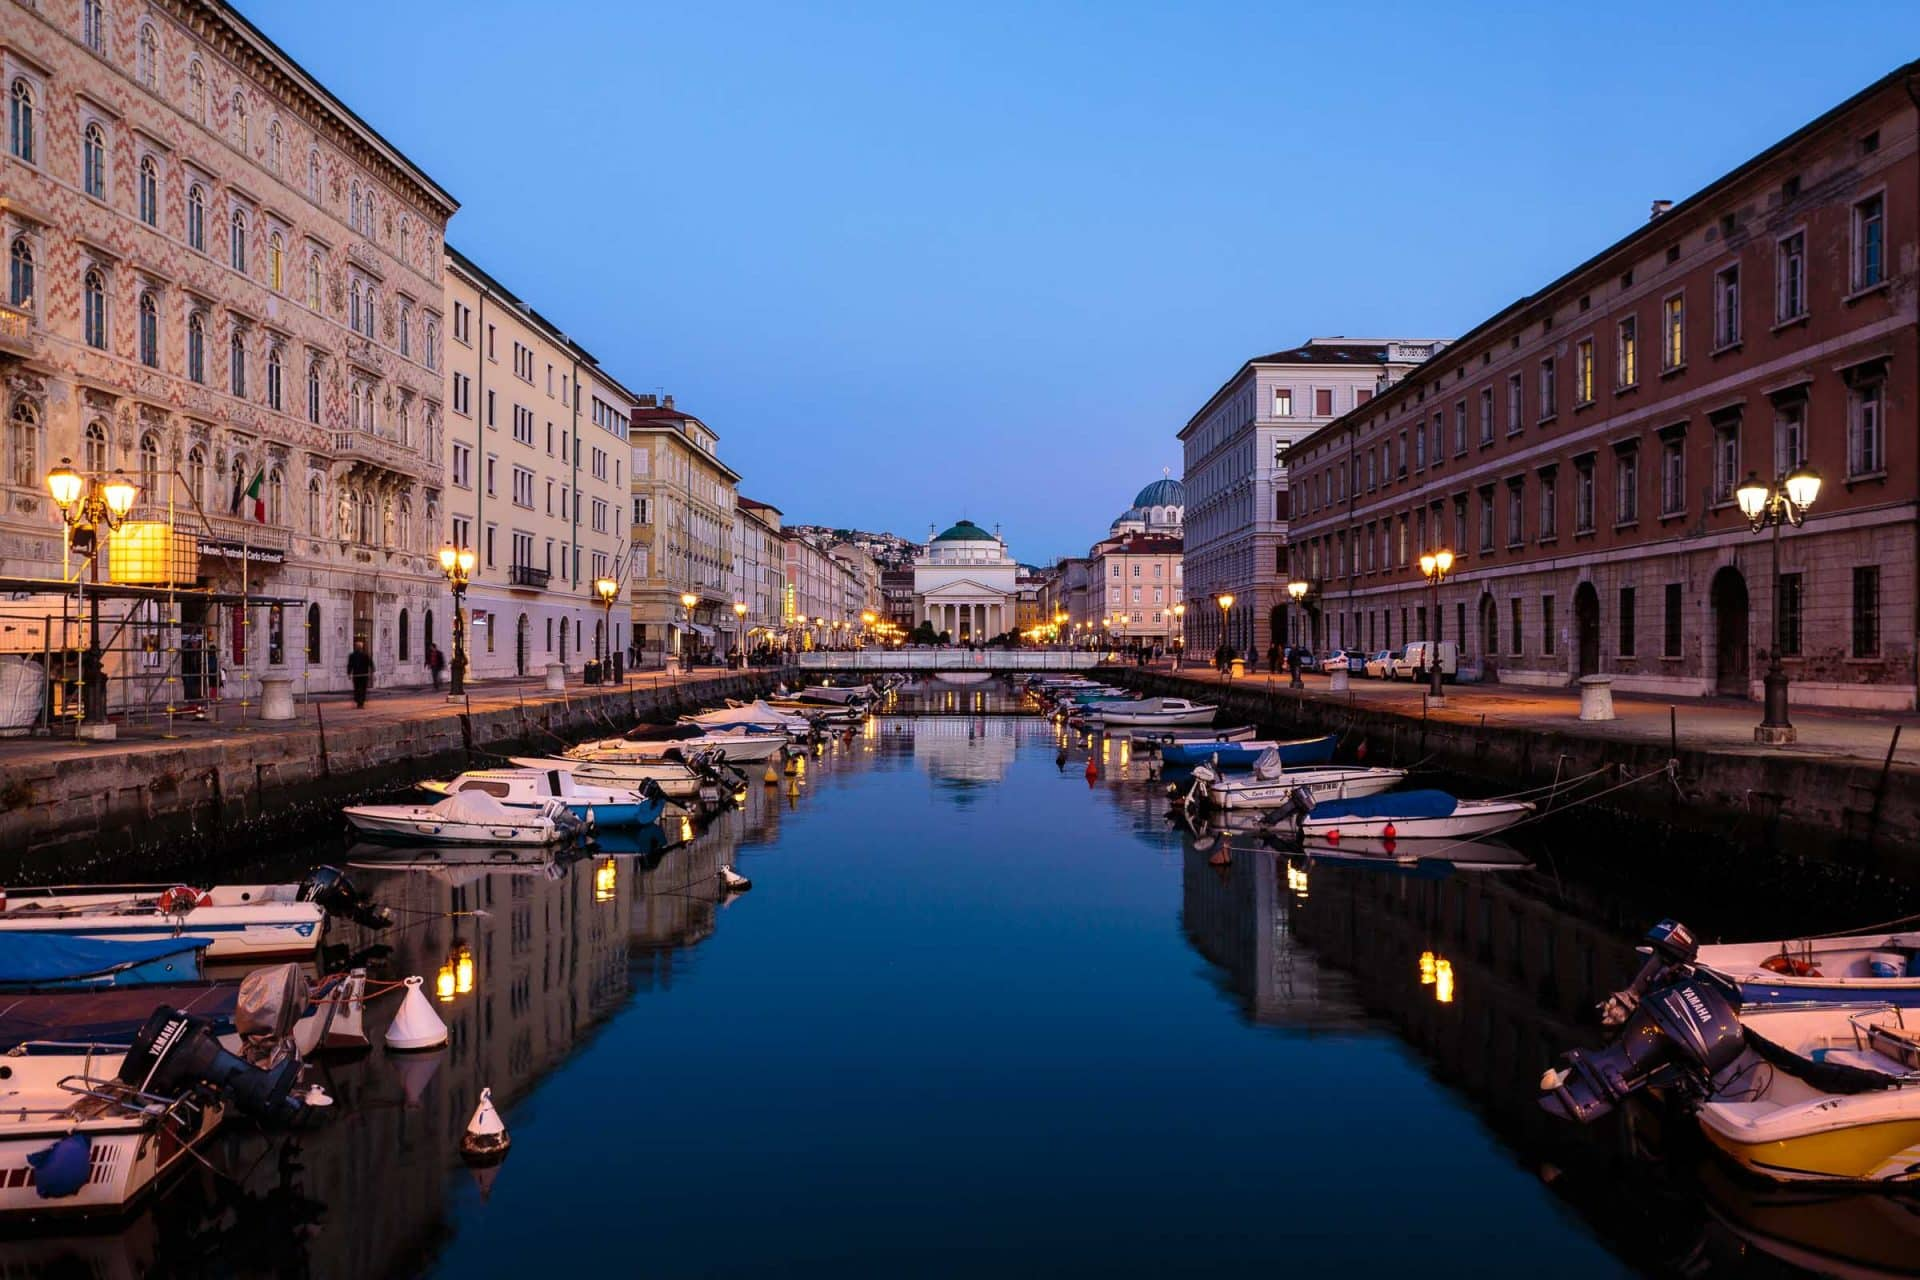 Canal Grande illuminato all'ora blu